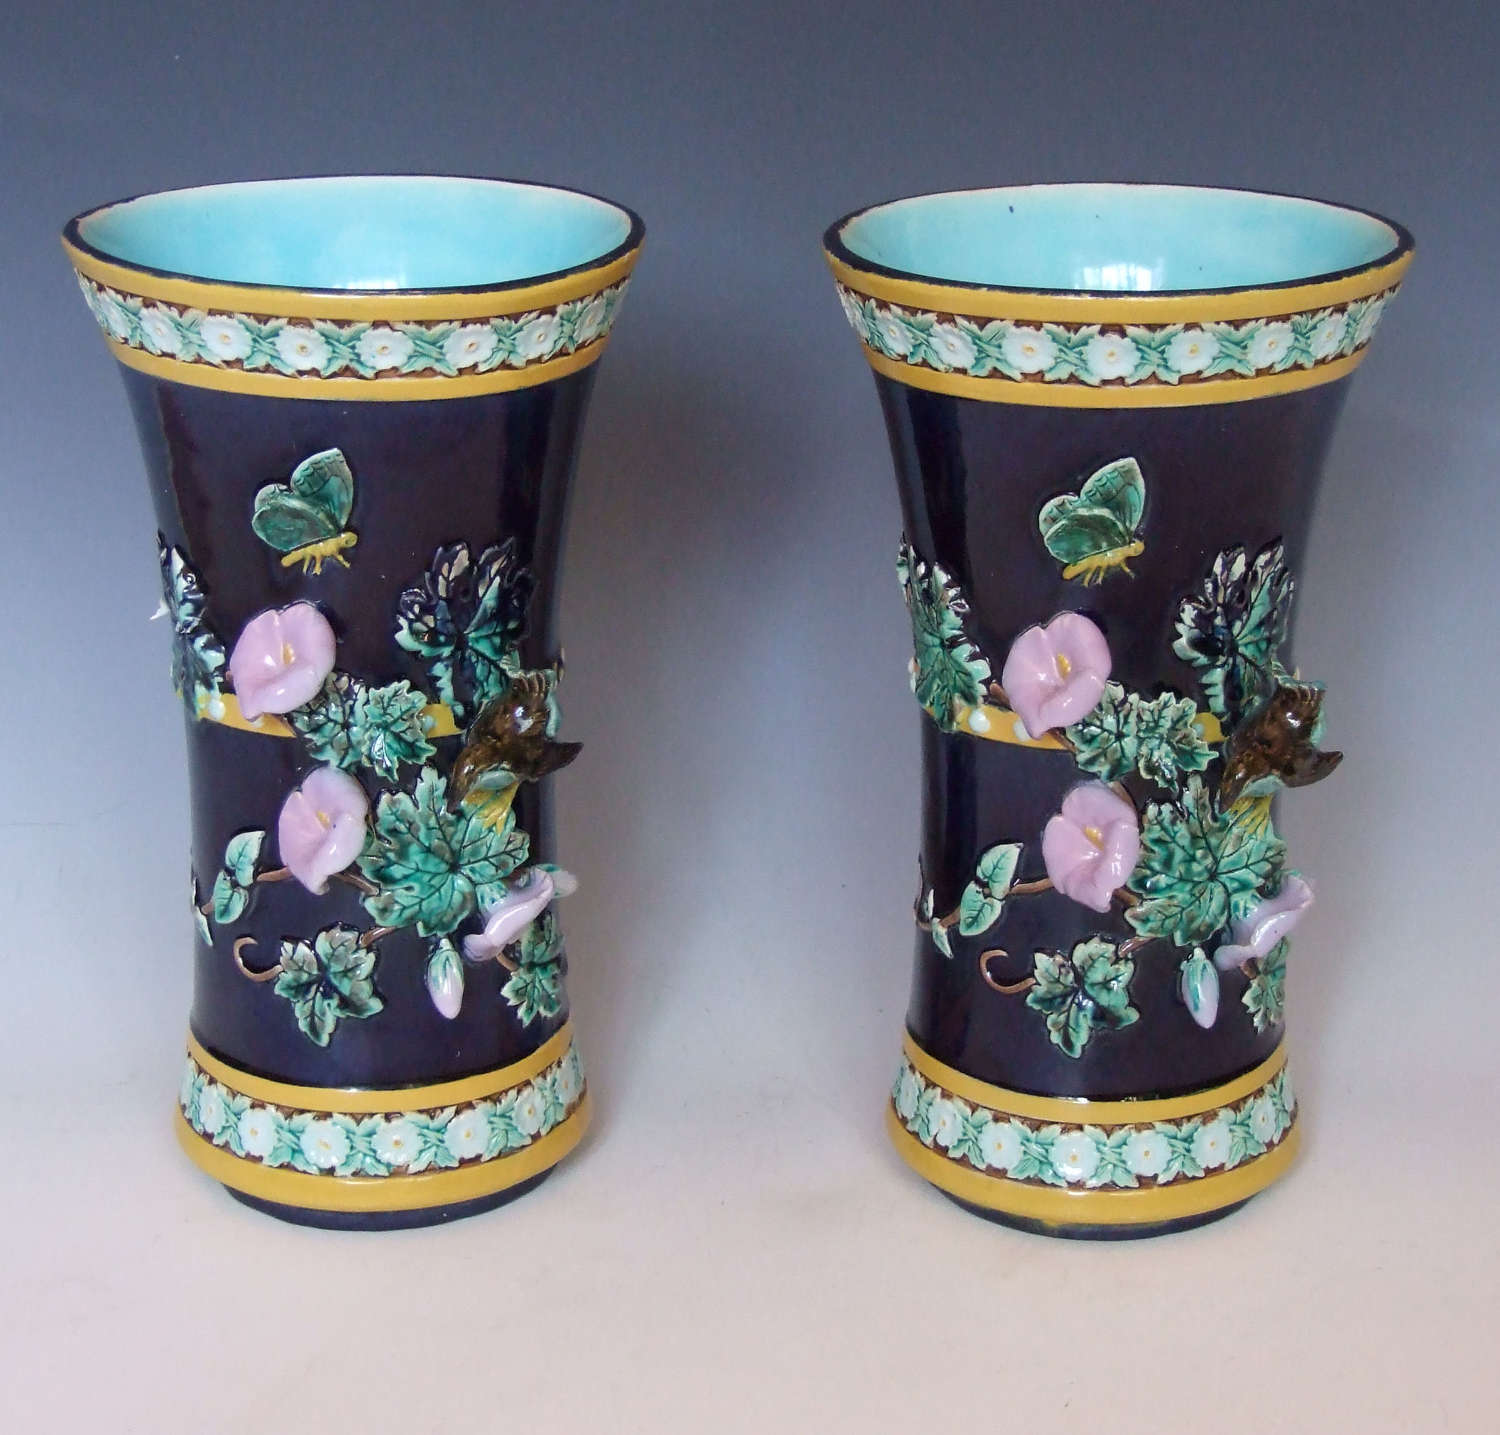 A beautiful pair of Joseph Holdcroft majolica vases.